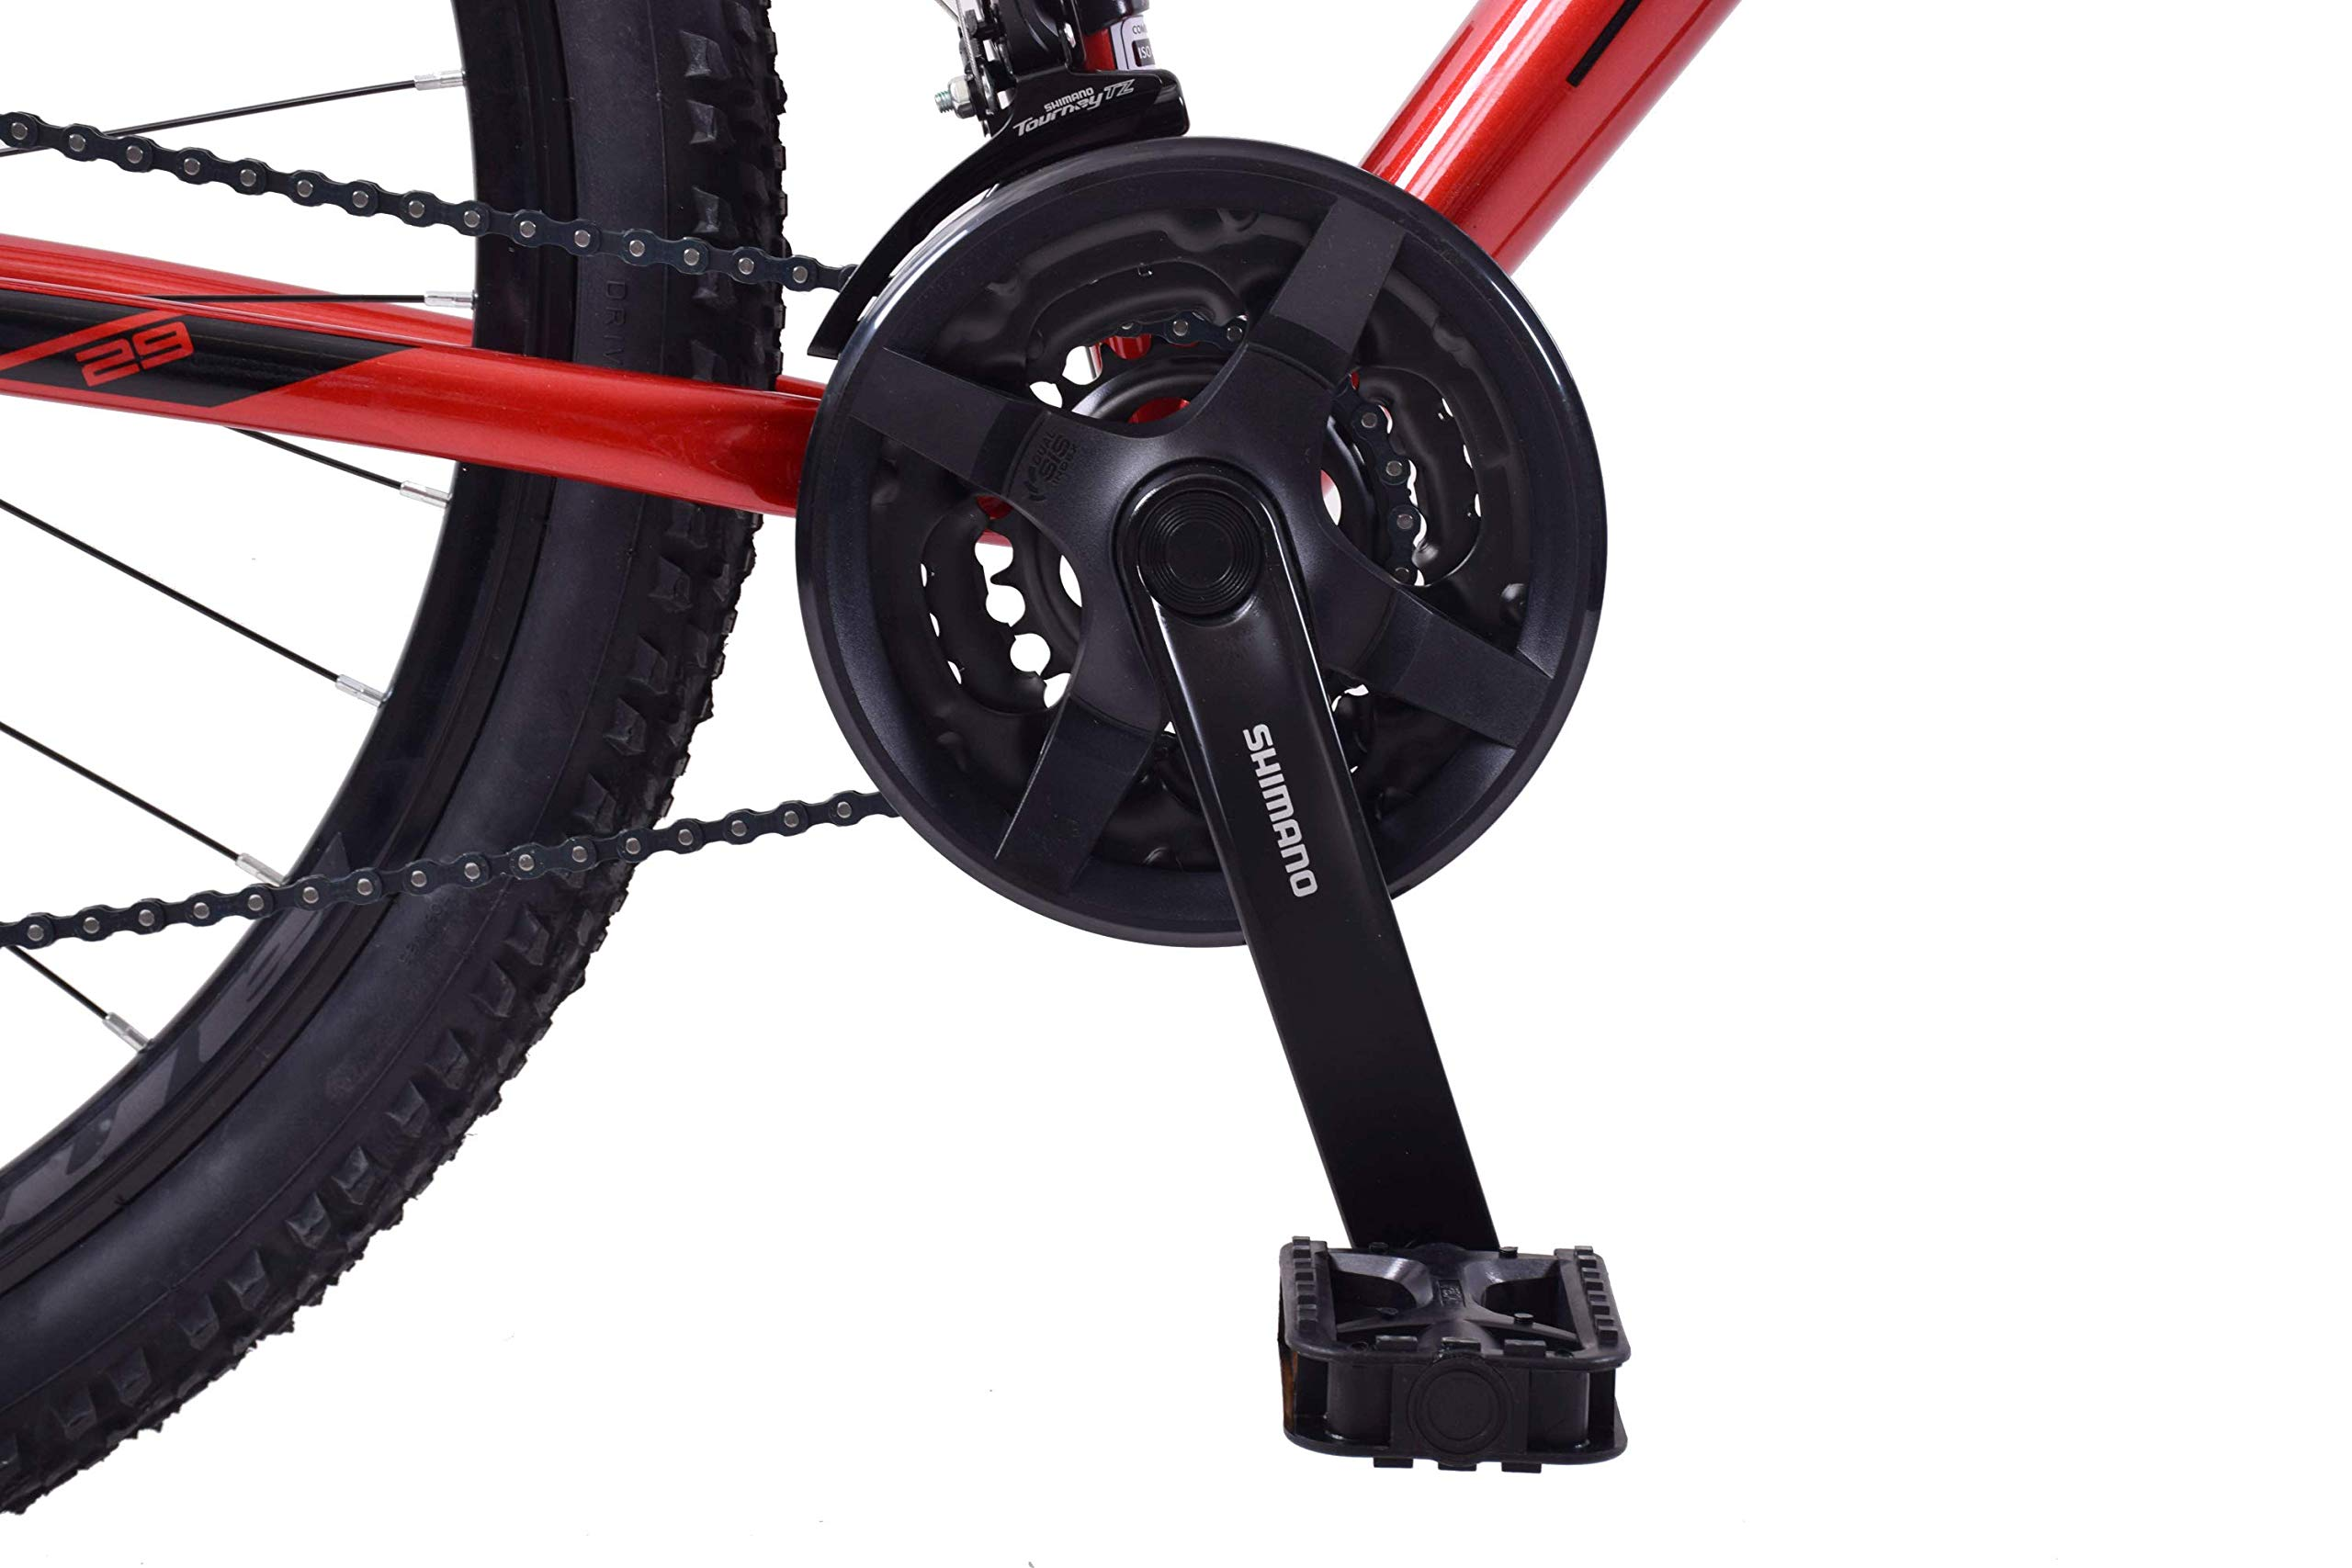 "71XAL4y8l9L - Ammaco. Team 4.0 29"" 29er Mens Mountain Bike Front Suspension Disc Brakes 23"" Frame Alloy Red/Black"